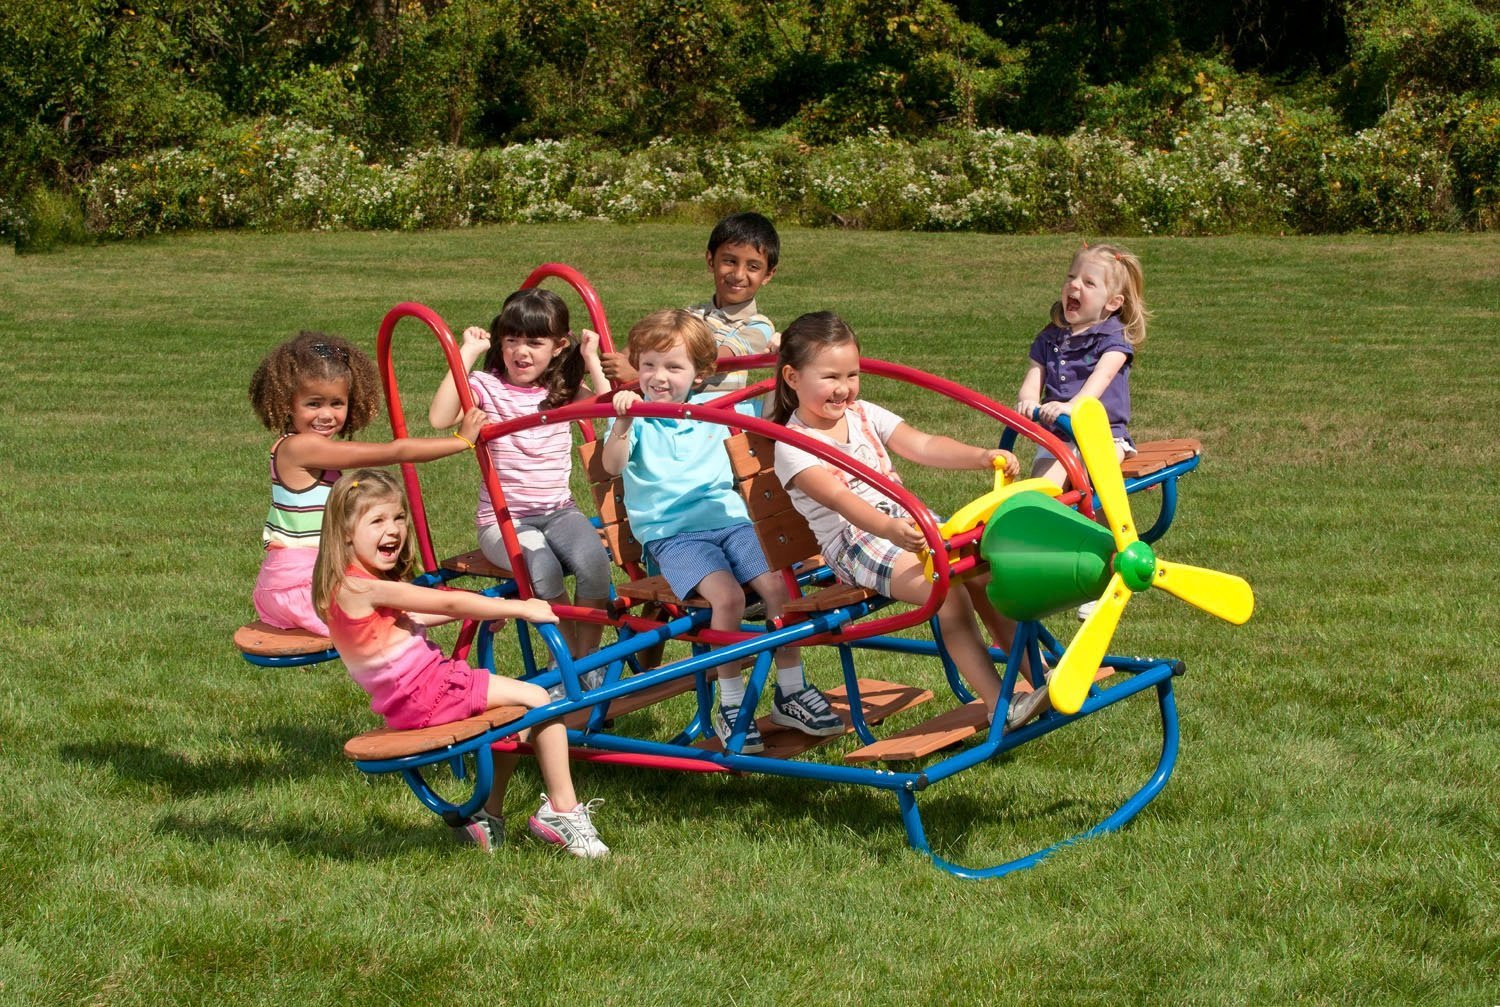 Cool Outdoor Toys For Kids  What are The Best Outdoor Toys for Kids to Play in the Summer